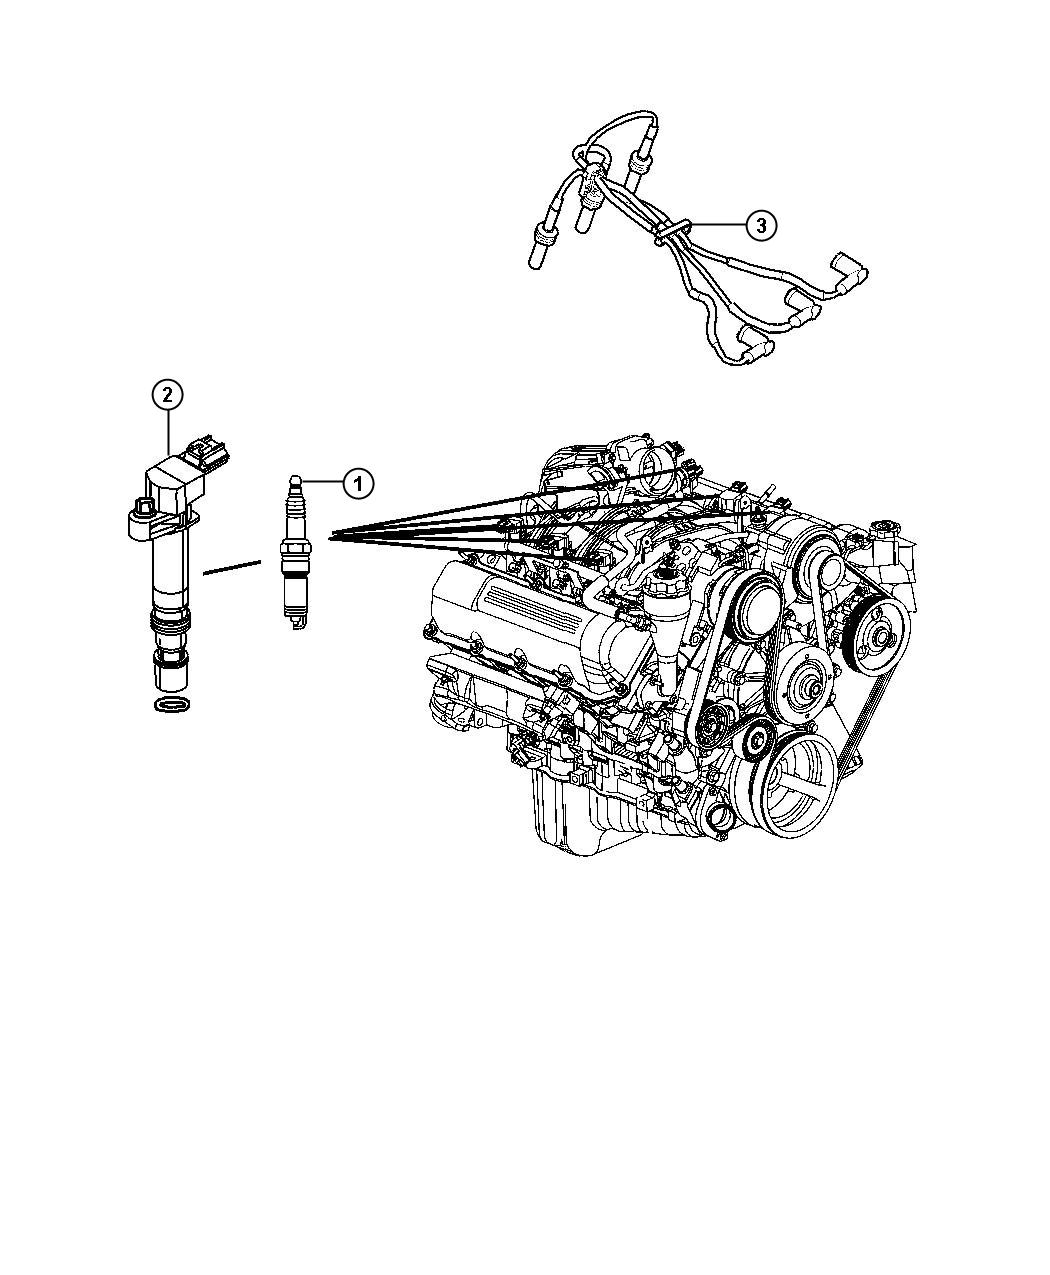 2012 Jeep Liberty SPORT Spark Plugs and Ignition Coil.